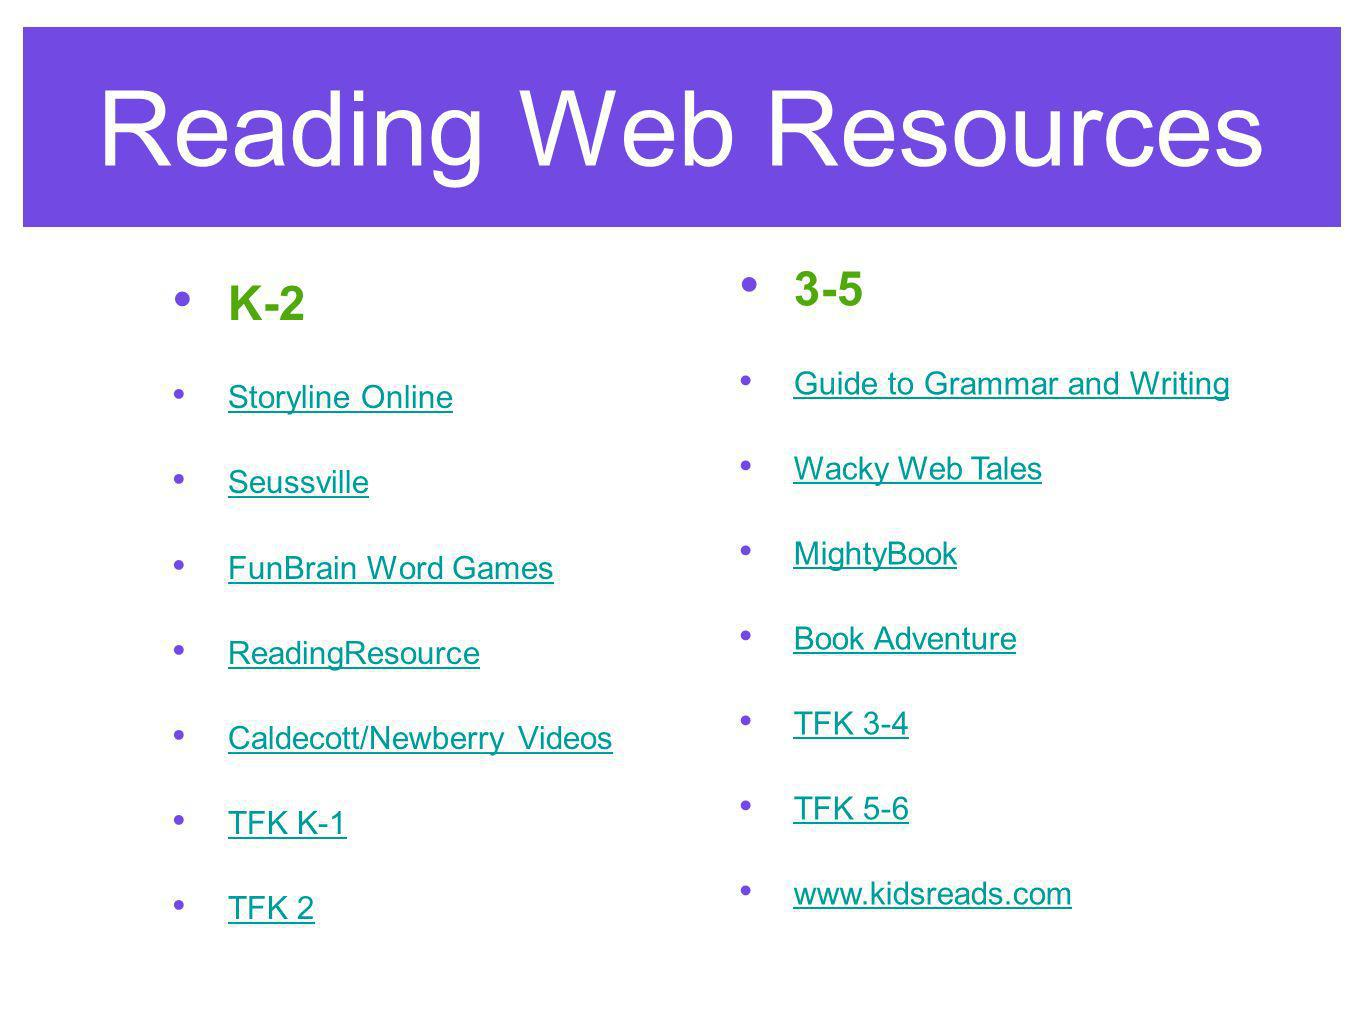 Reading Web Resources K-2 Storyline Online Seussville FunBrain Word Games ReadingResource Caldecott/Newberry Videos TFK K-1 TFK 2 3-5 Guide to Grammar and Writing Wacky Web Tales MightyBook Book Adventureook Adventure TFK 3-4 T TFK 5-6 www.kidsreads.comww.kidsrea